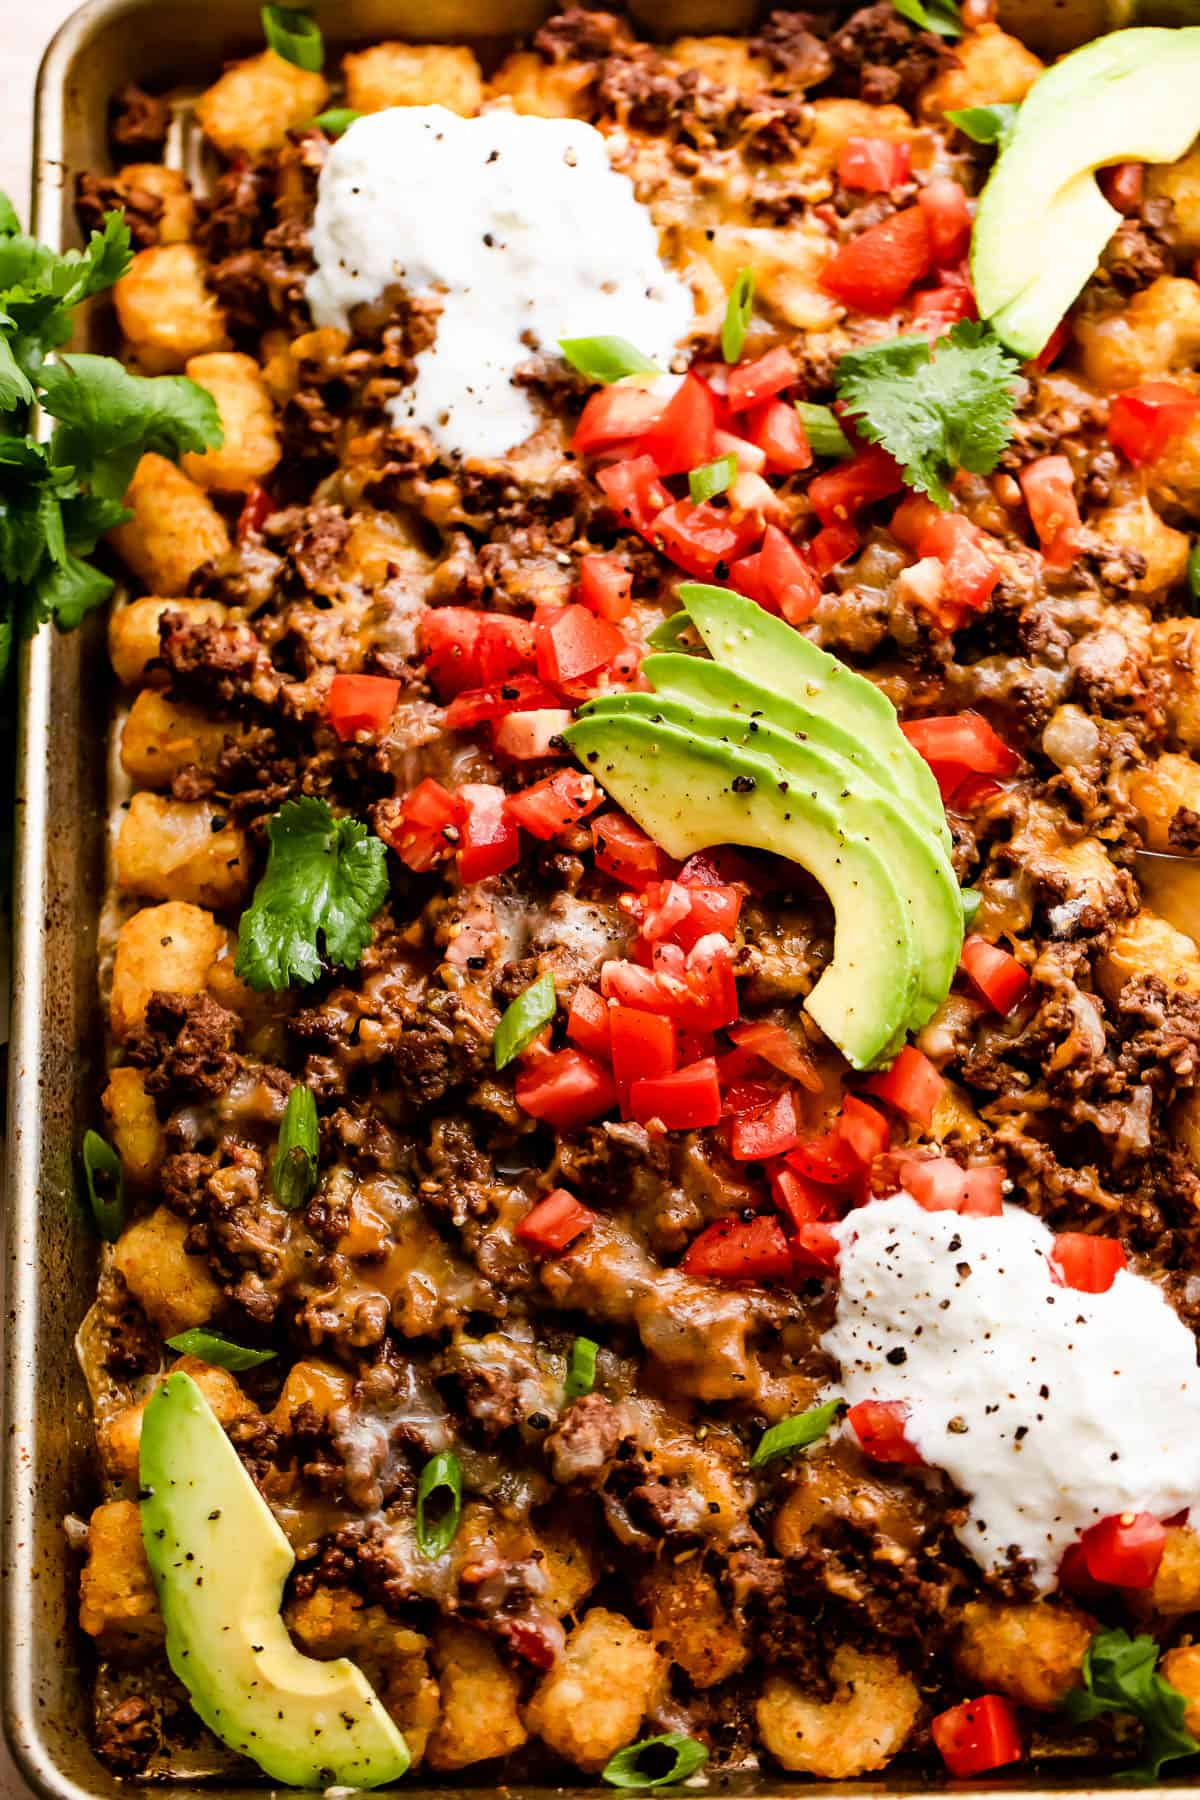 baking sheet with tater tots topped with ground beef, melted cheese, diced tomatoes, sour cream, and avocado slices